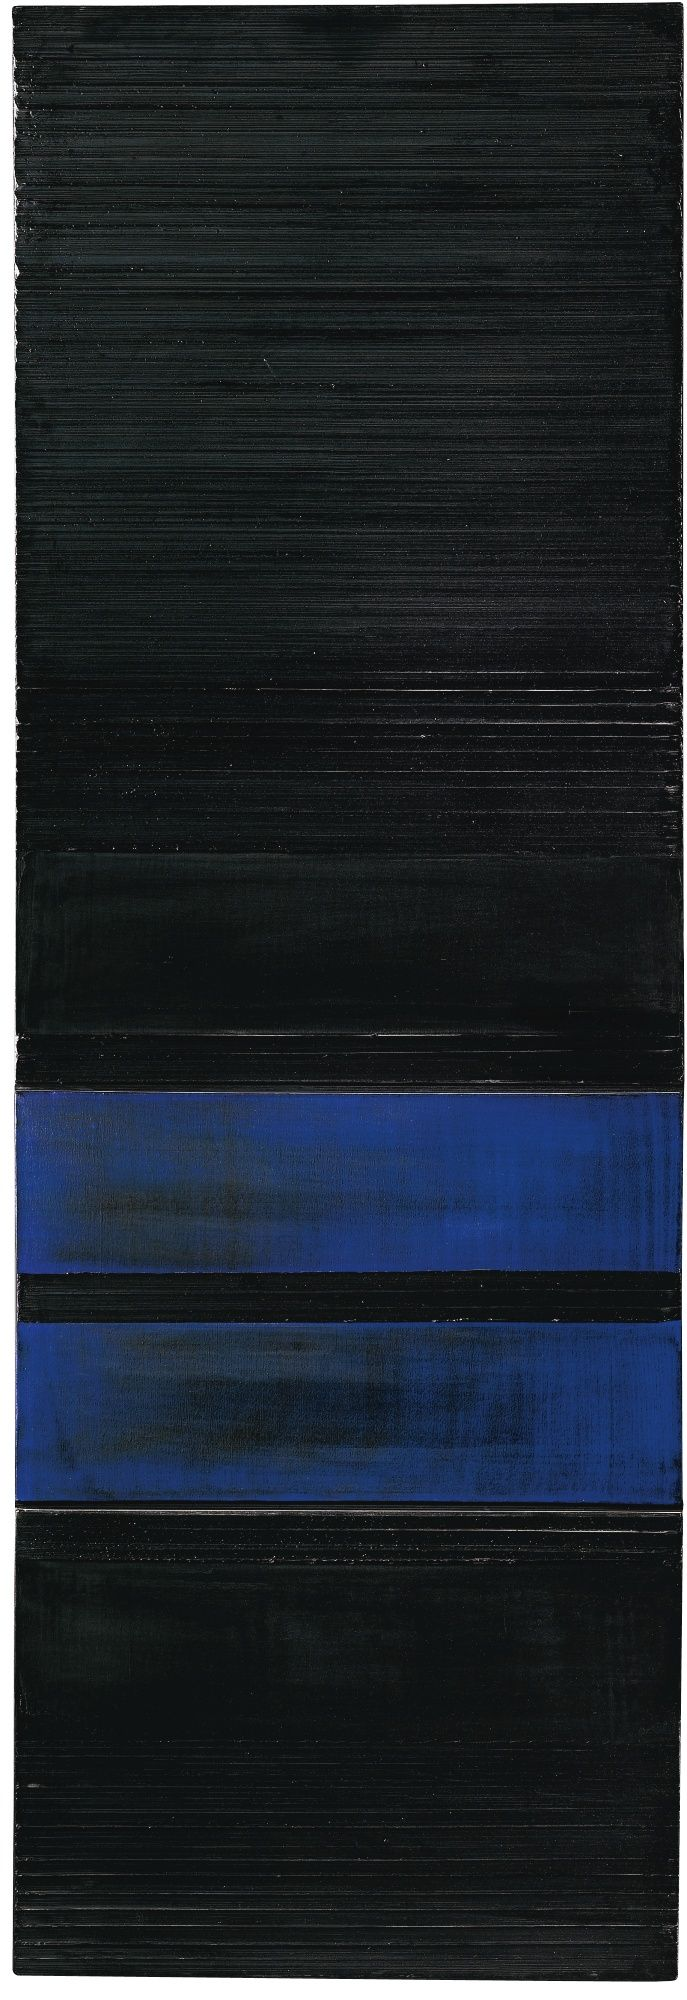 Pierre Soulages - 1990